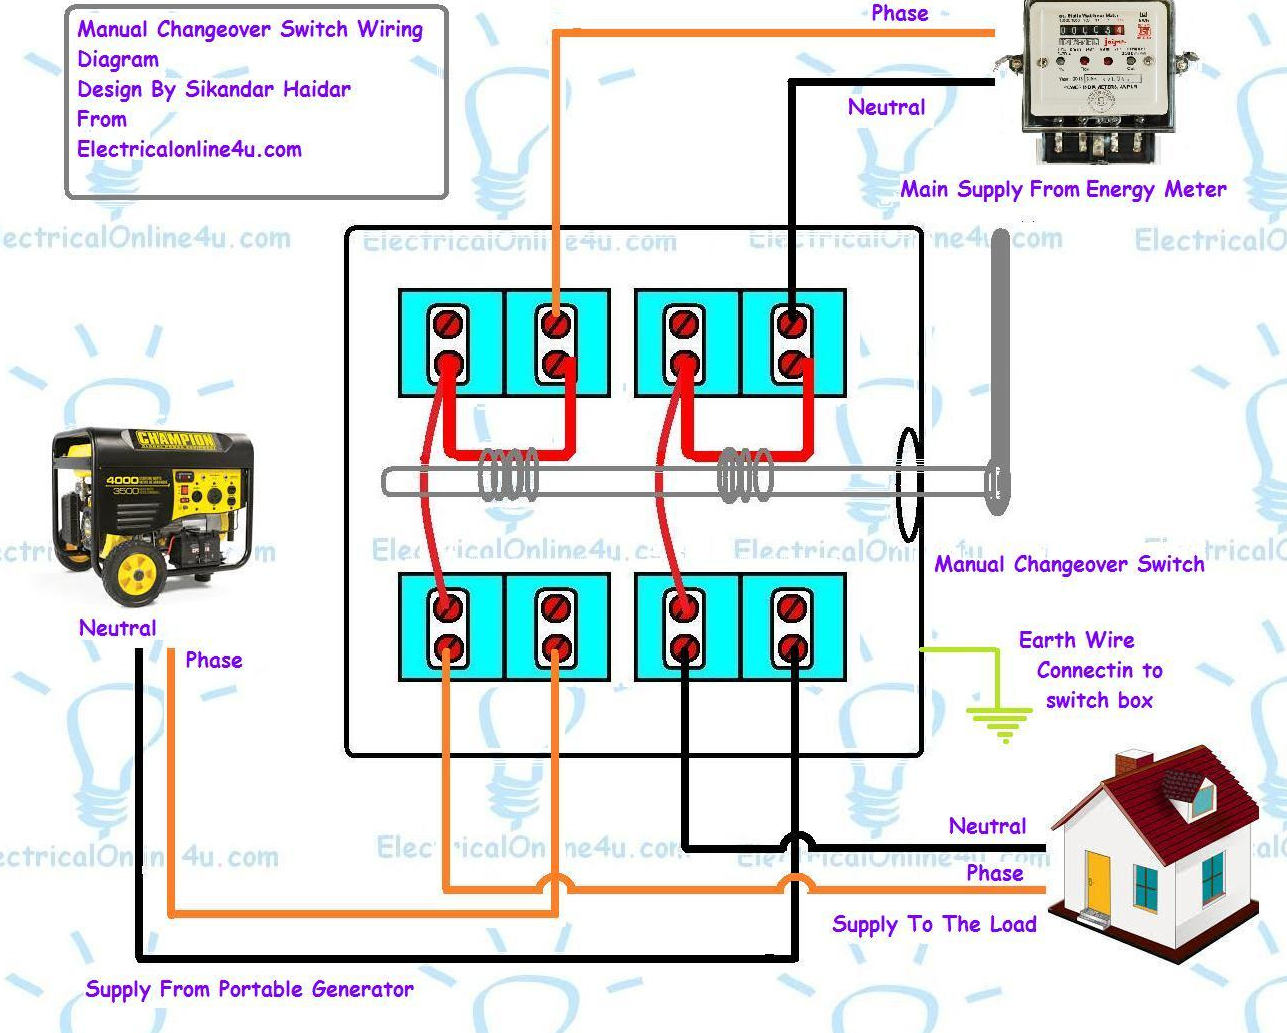 Manual changeover switch wiring diagram for portable ... on generator ignition switches, generator meters, generator conduit, generator installation, generator outlet, generator gearbox, generator sizing, generator schematic, generator ventilation, generator fuel piping, generator solenoid, generator power, generator excitation theory, generator components, generator heater, generator earthing, generator battery, generator plugs, generator alternator,